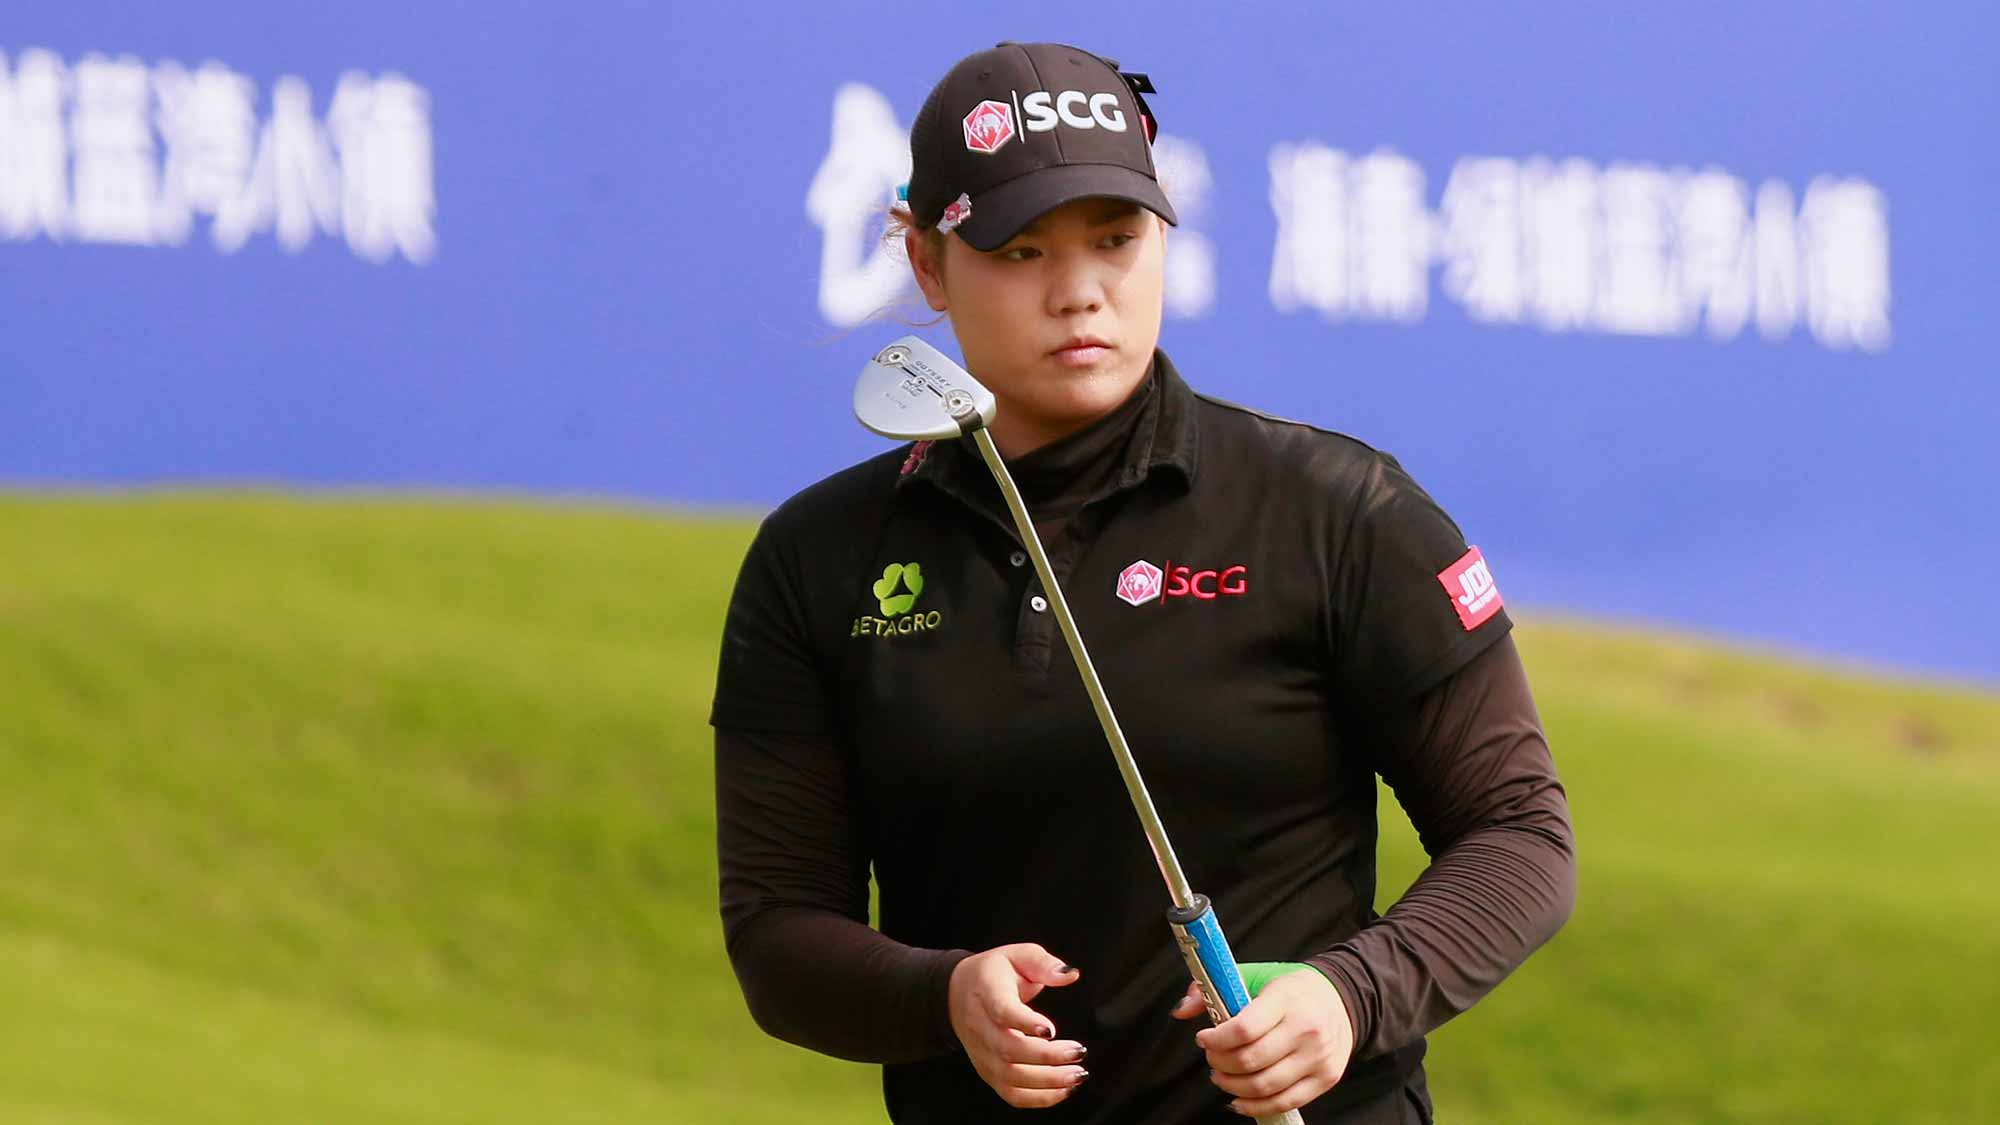 Ariya Jutanugarn of Thailand in action at the 18th green during Round 3 of Blue Bay LPGA of Day 3